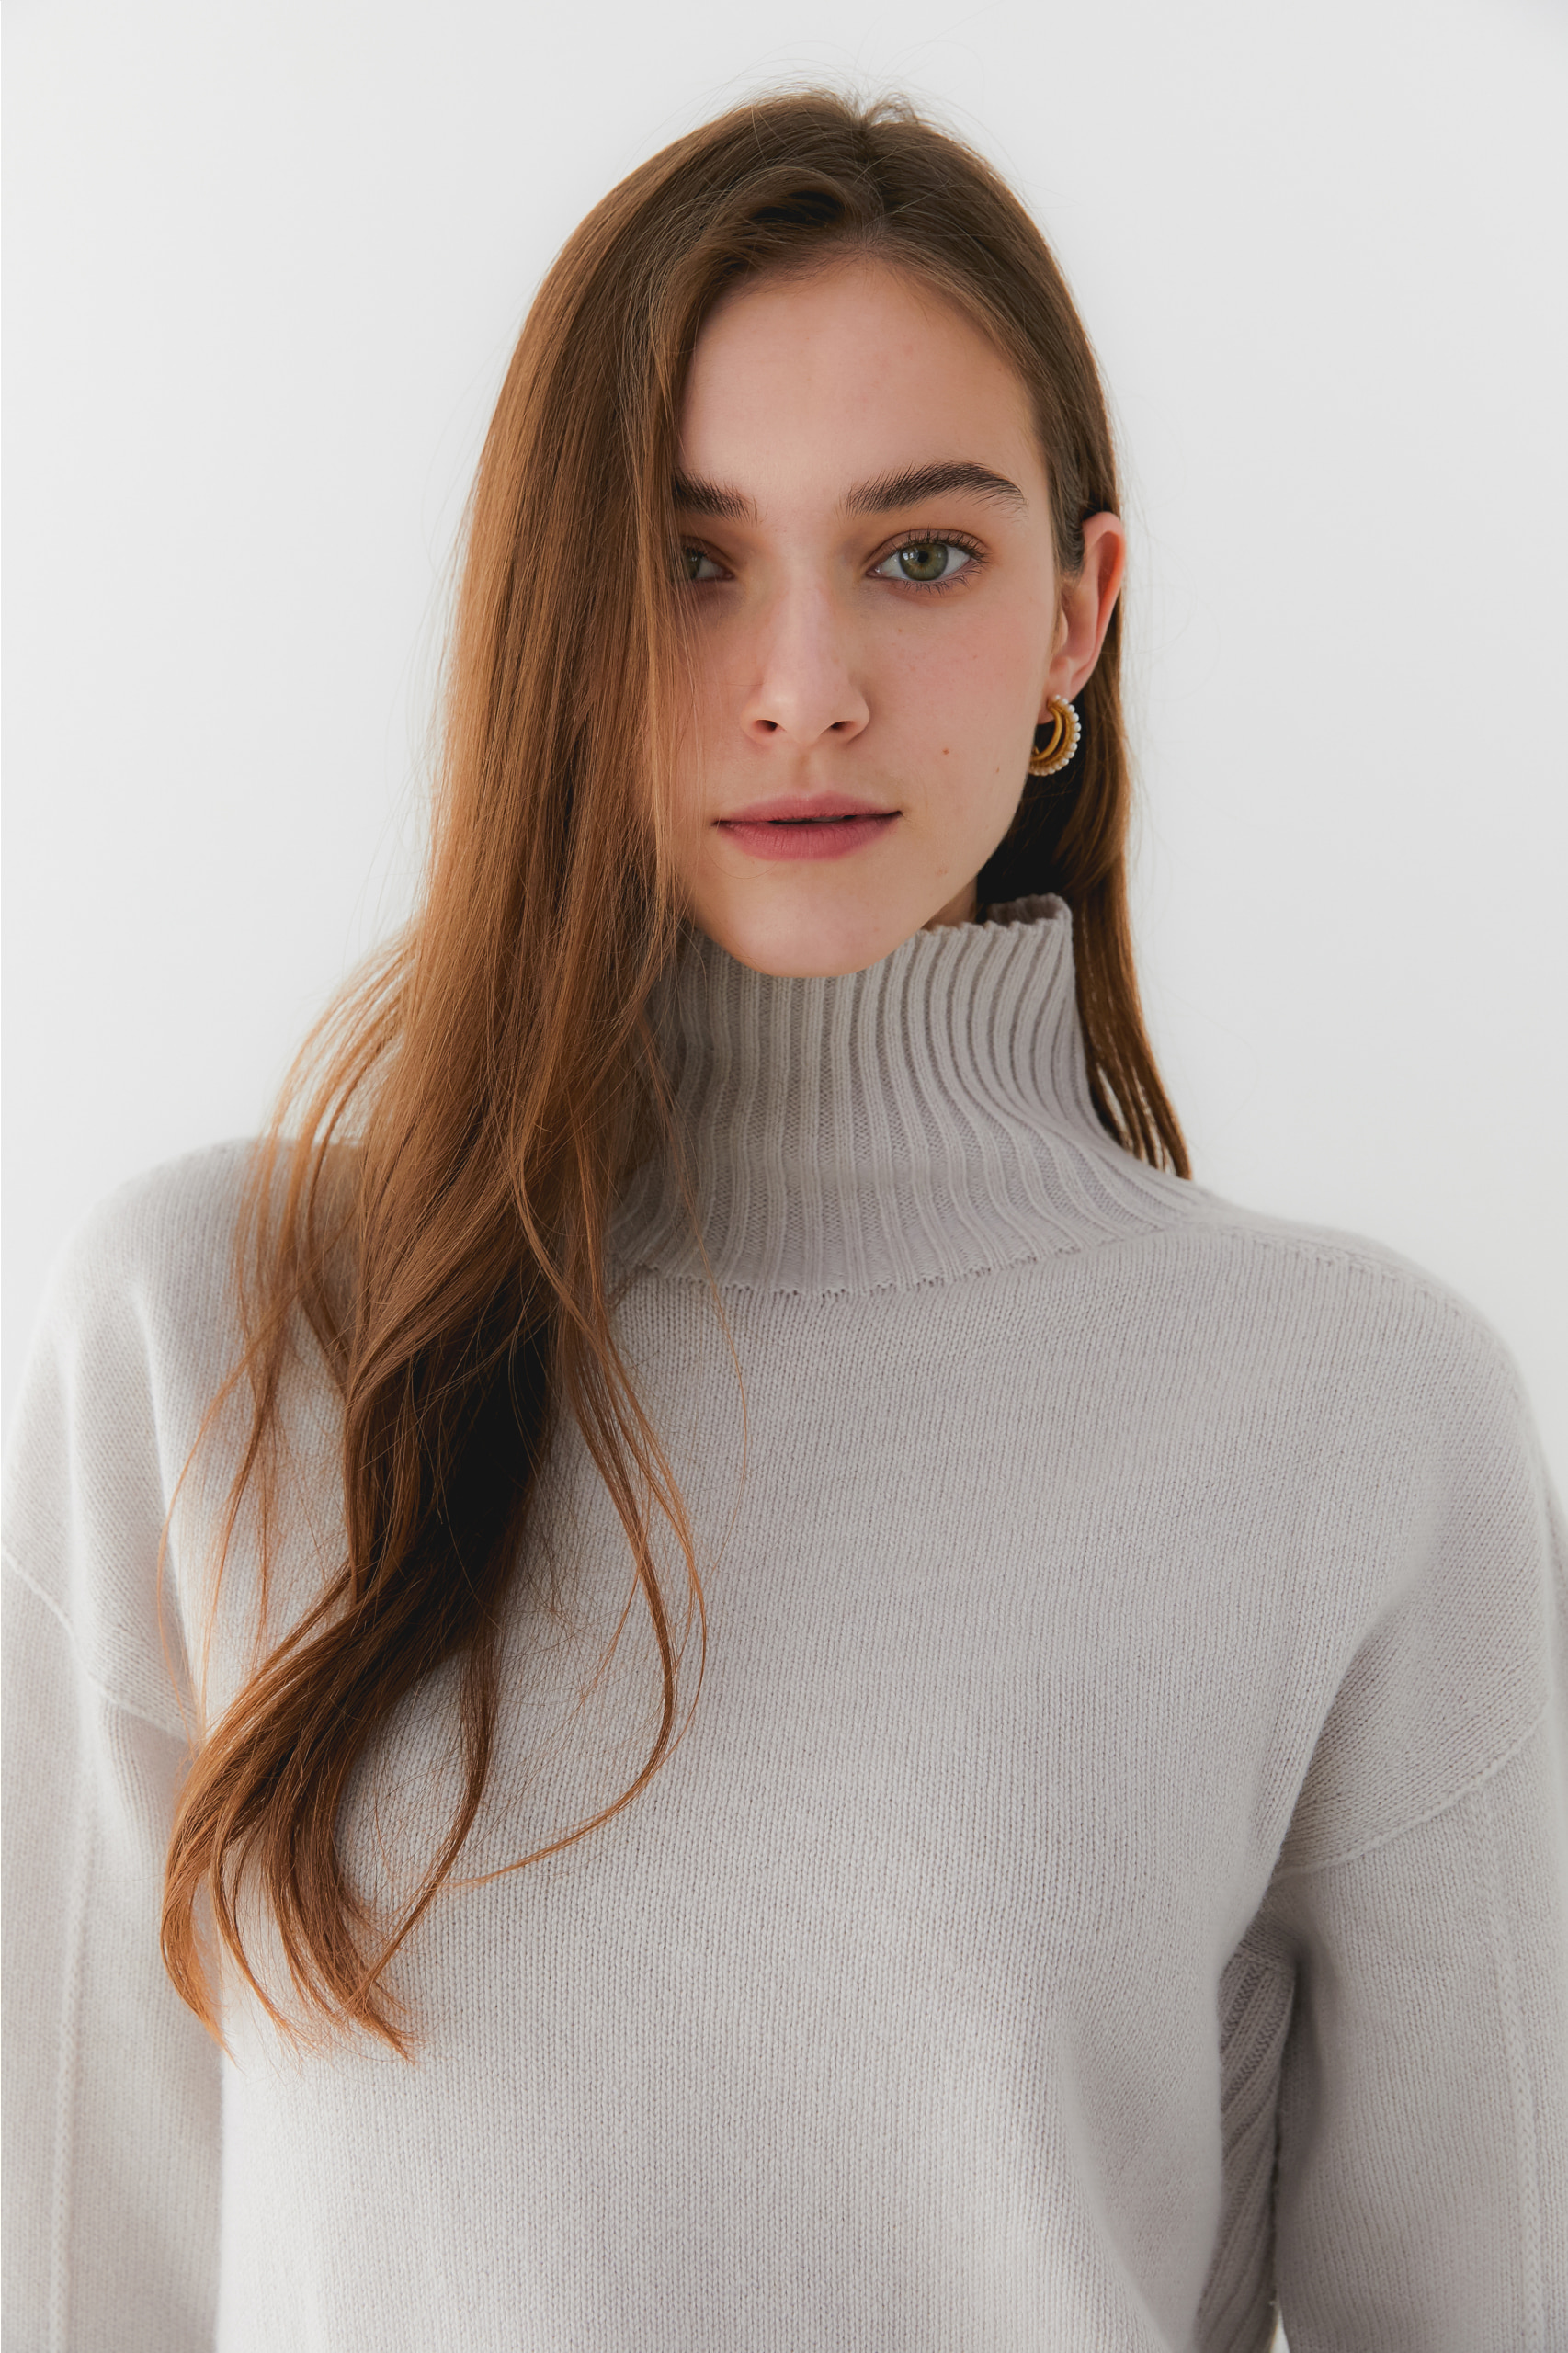 프리미엄 캐시미어 100 풀오버 [Pure cashmere100 whole-garment knitting turtleneck pullover - Dove gray]